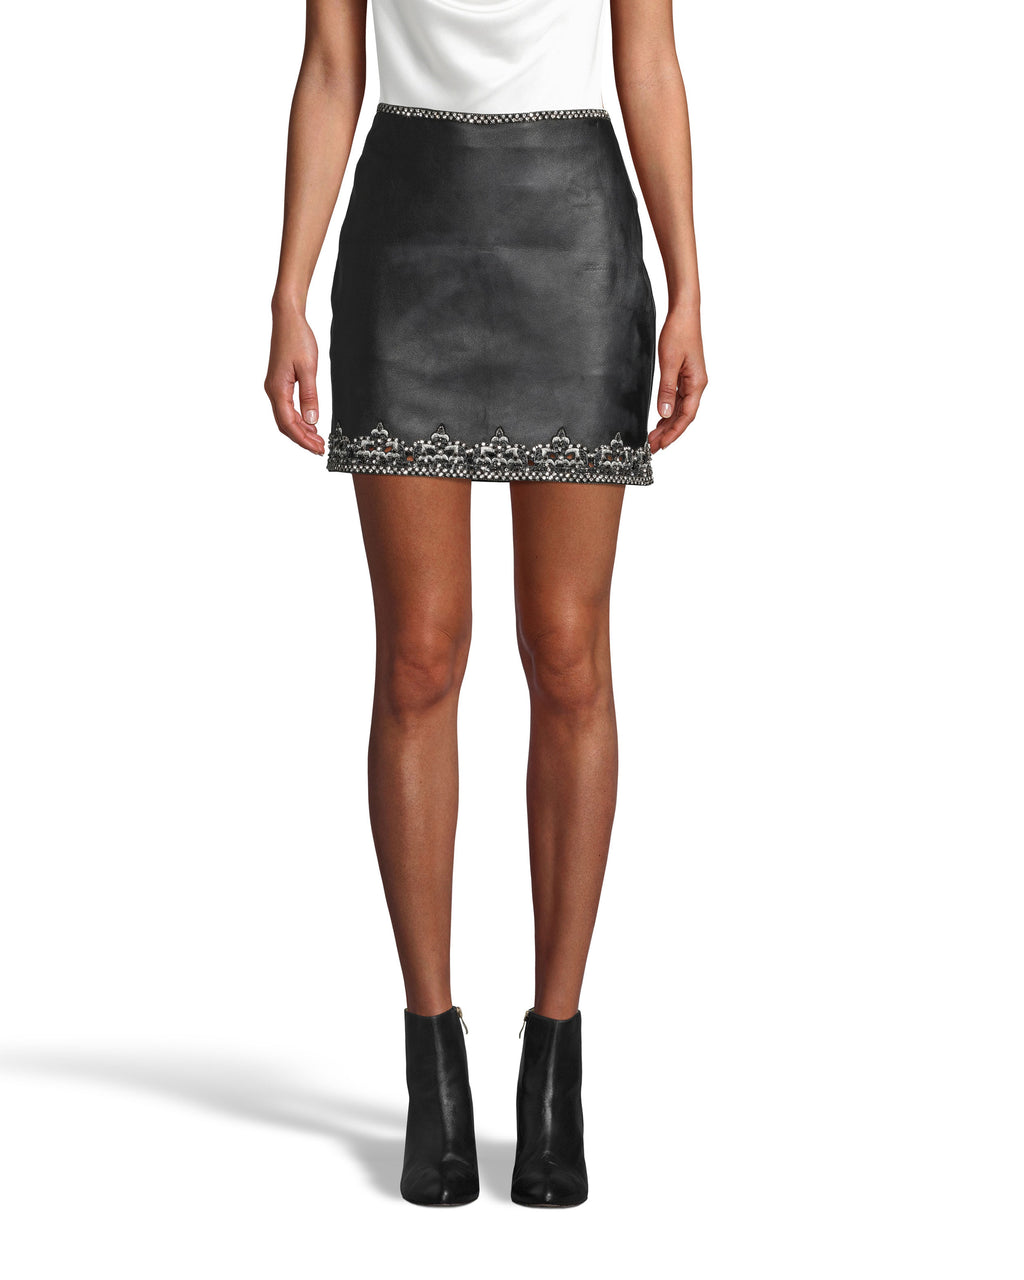 CS17651 - EMBELLISHED CROWN TRIM LEATHER MINI SKIRT - bottoms - skirts - Classic silhouette with added edge. This leather mini skirt features an rhinestone and sequin crown trim along the hem and waistband. Back zipper for closure. Add 1 line break Stylist tip: Pair with a white top for a simple statement look.